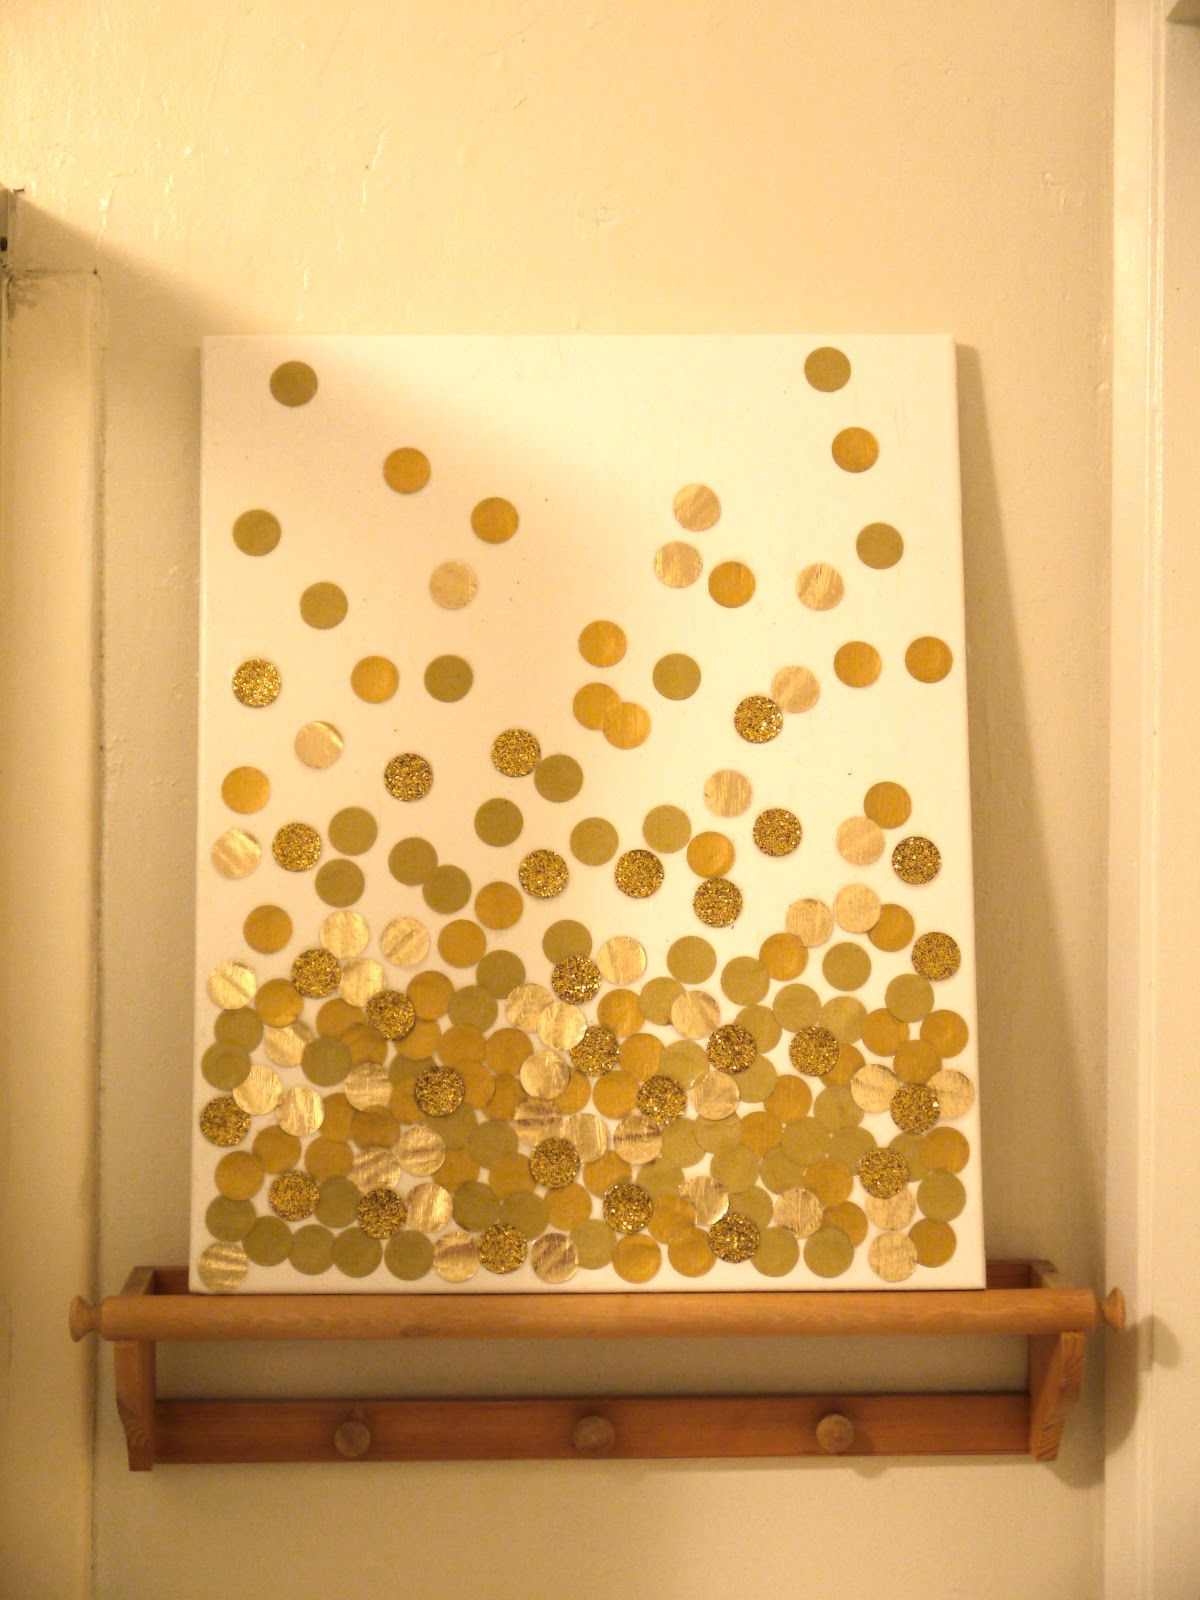 Diy Glitter Dots On Canvas Wall Art Would Be Cute In Pink Gray ...